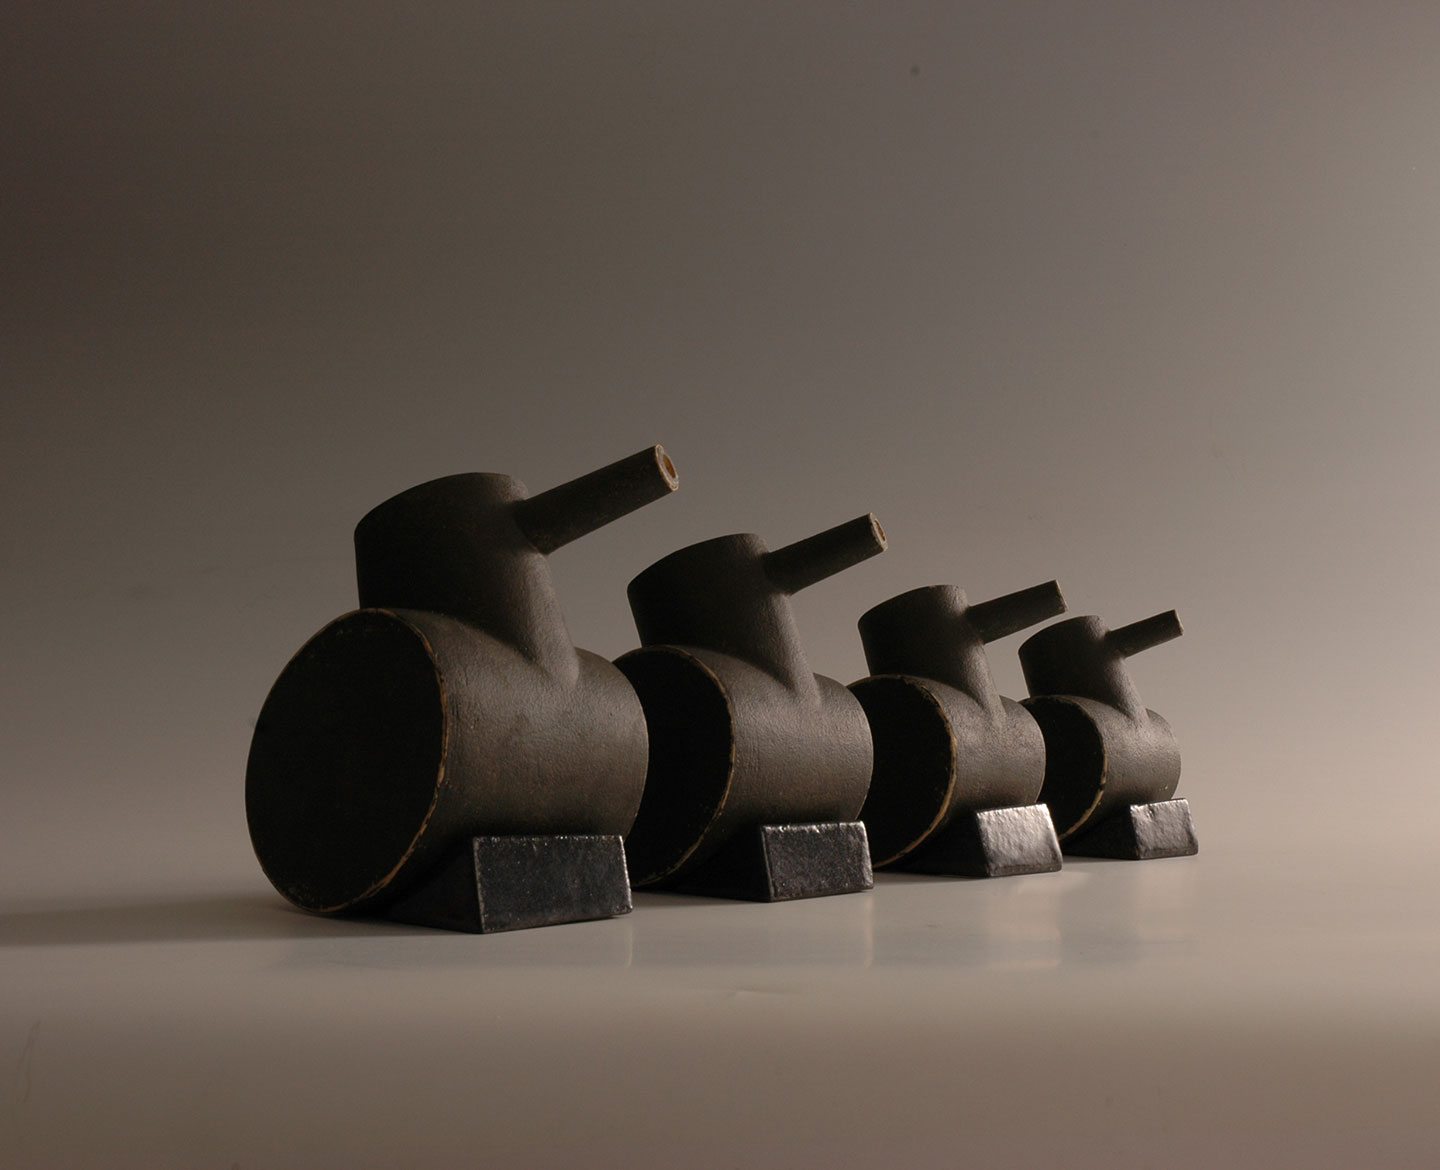 Tank family, stoneware ceramic sculpture, height 15cm max